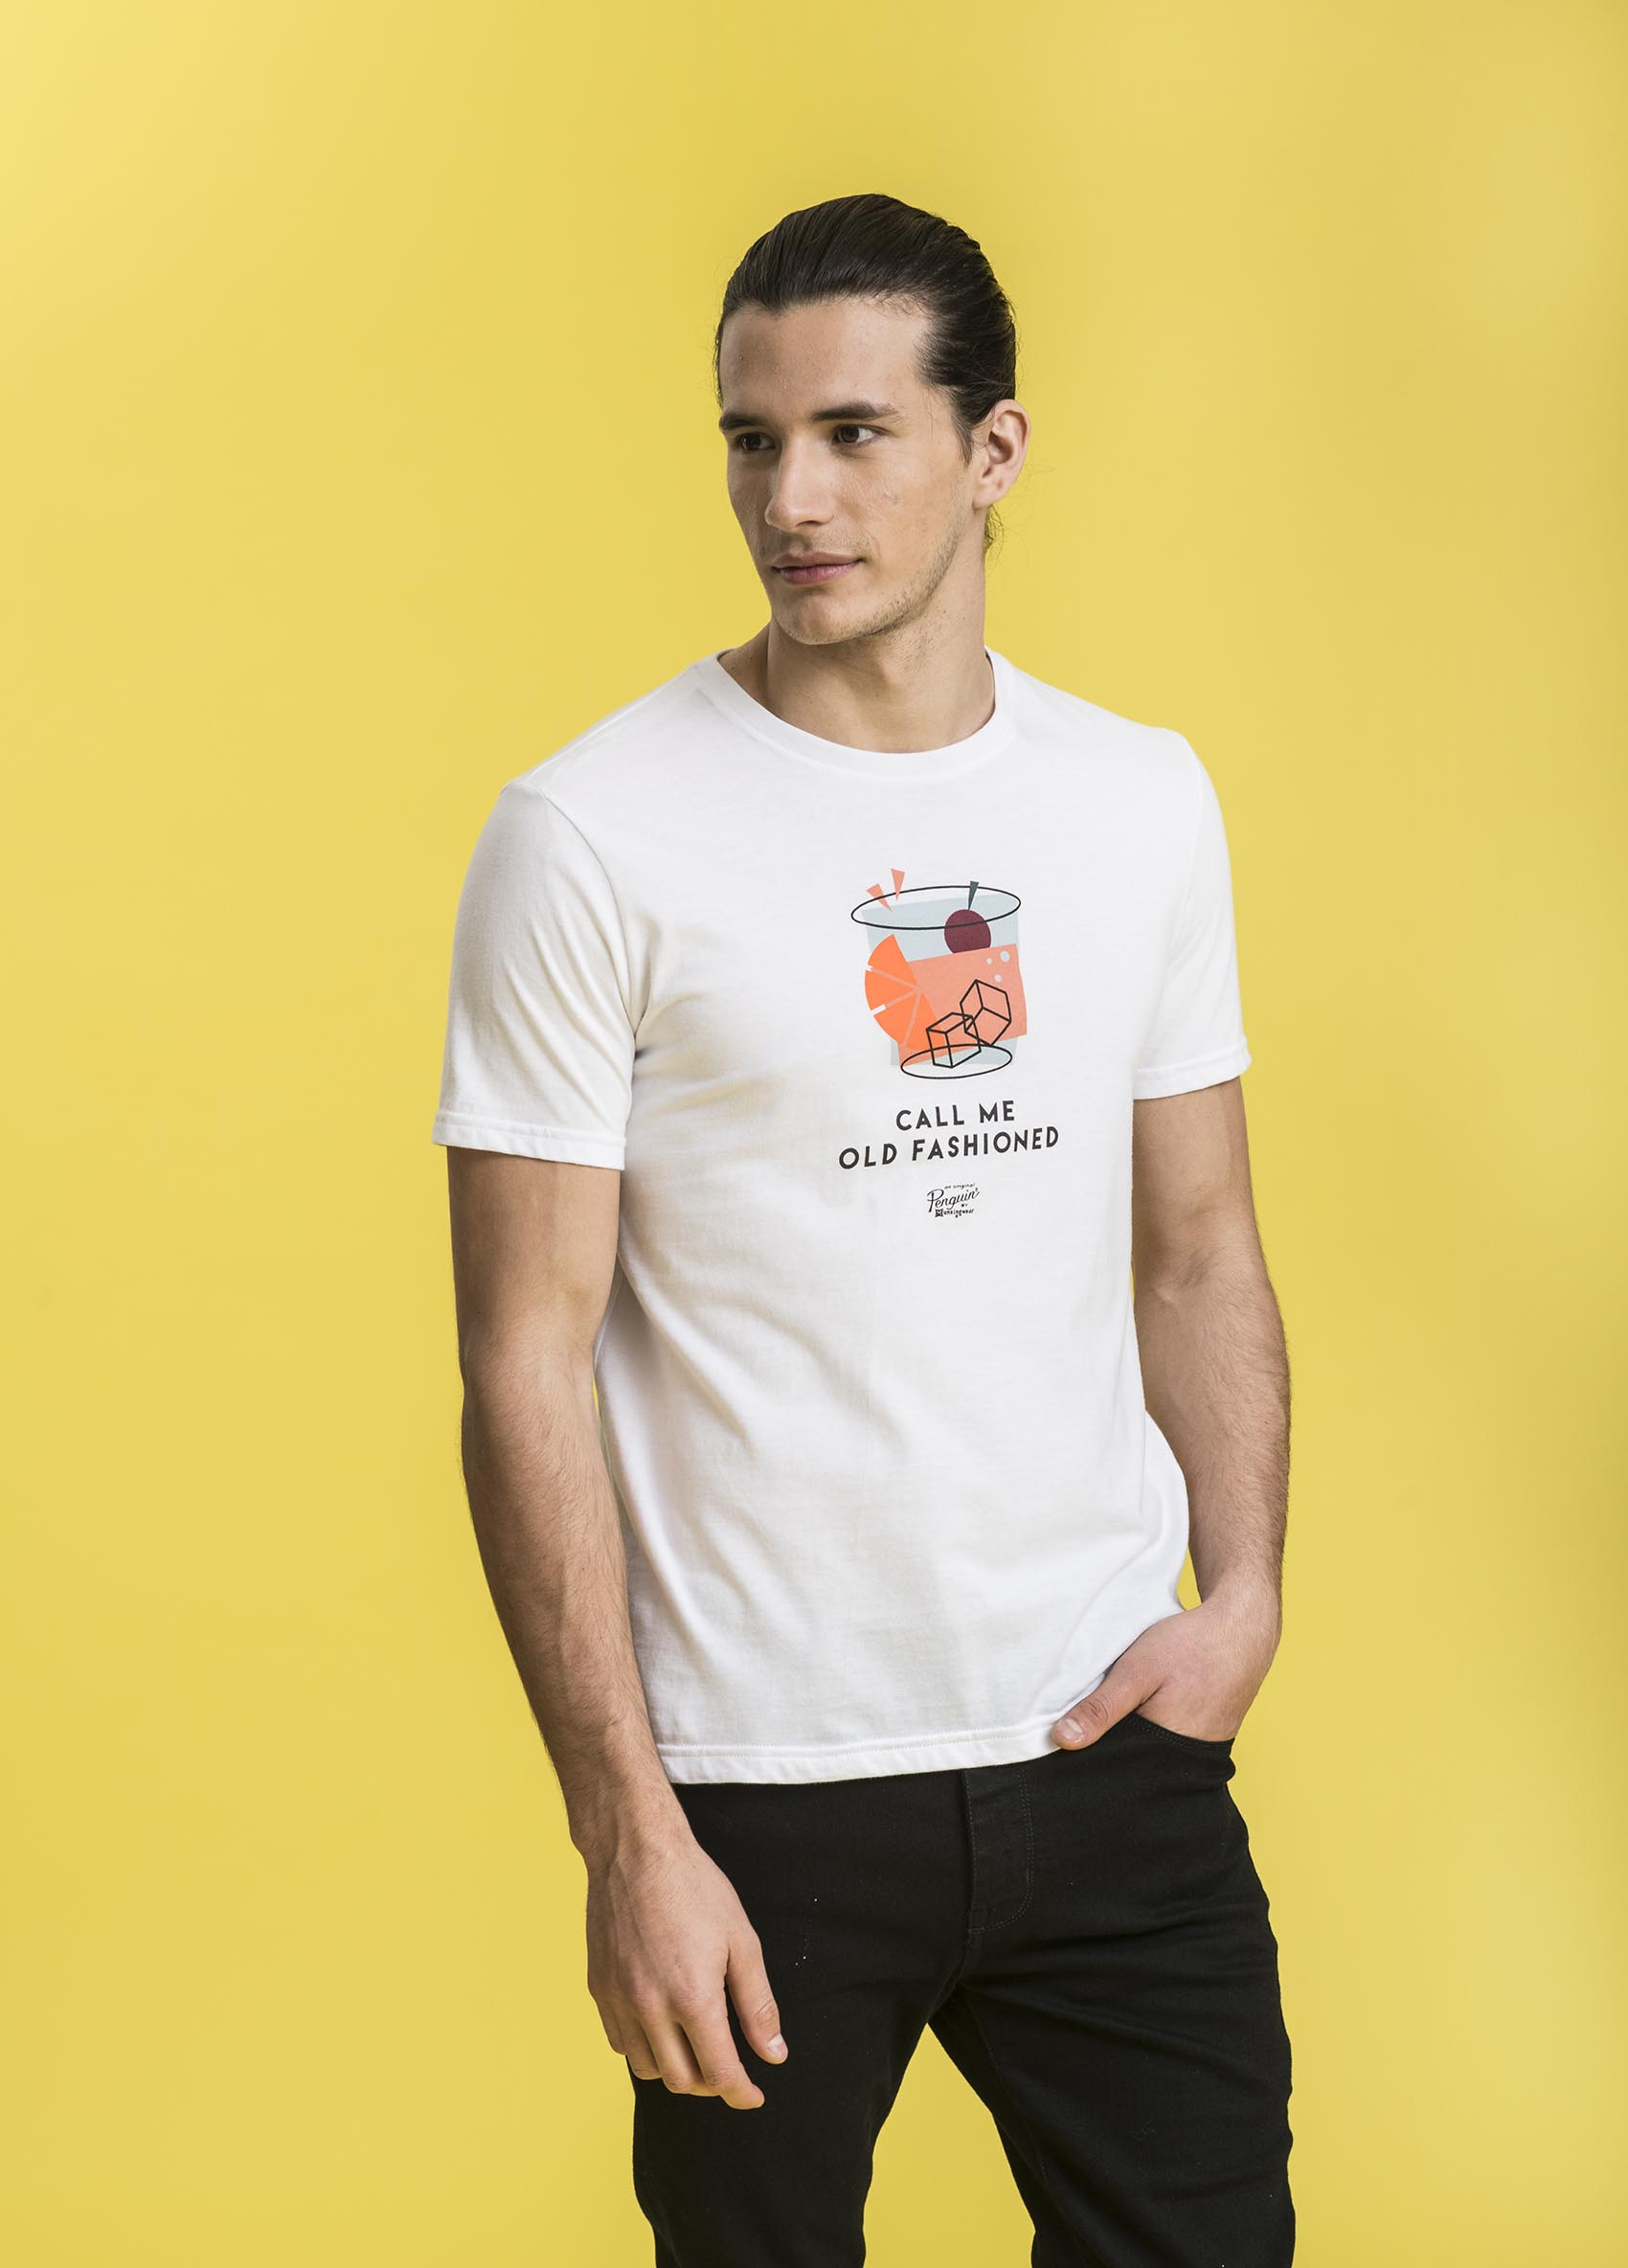 penguin_call-me-old-fashioned-tee_35-25-2019__picture-12400